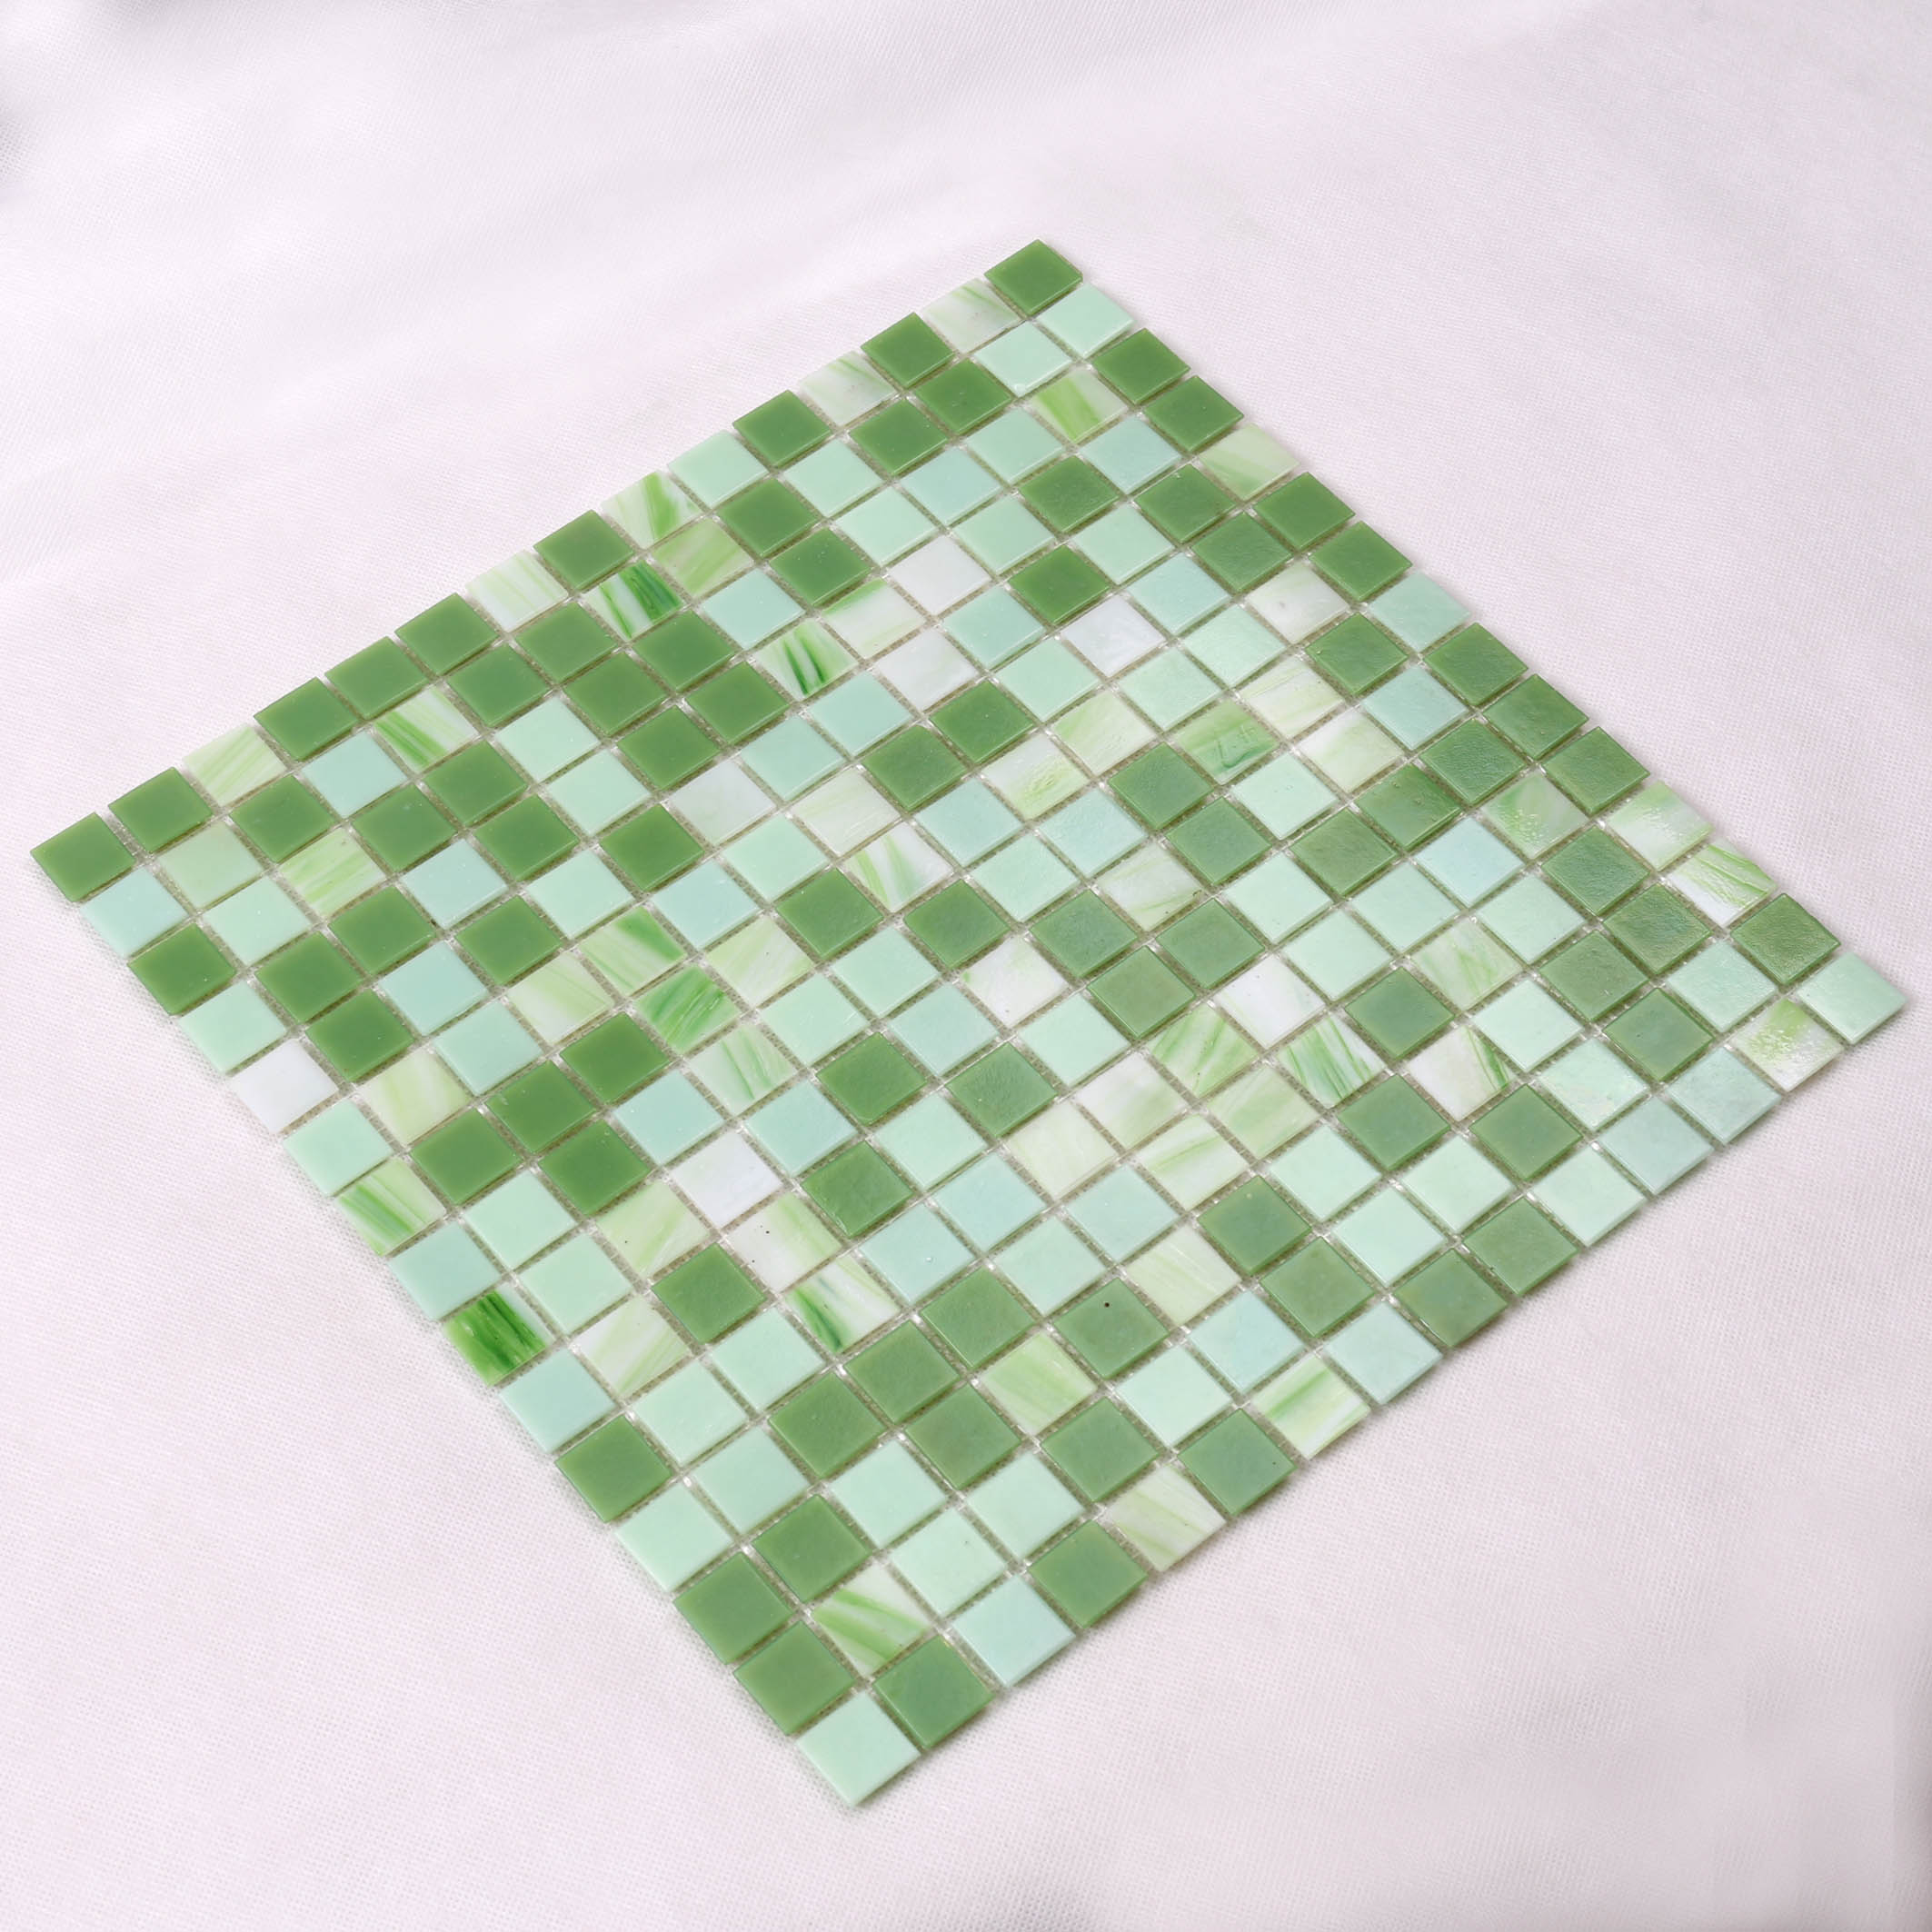 Heng Xing-Pool Step Tile, Pool Edge Tile Manufacturer | Pool Mosaic Tile-2